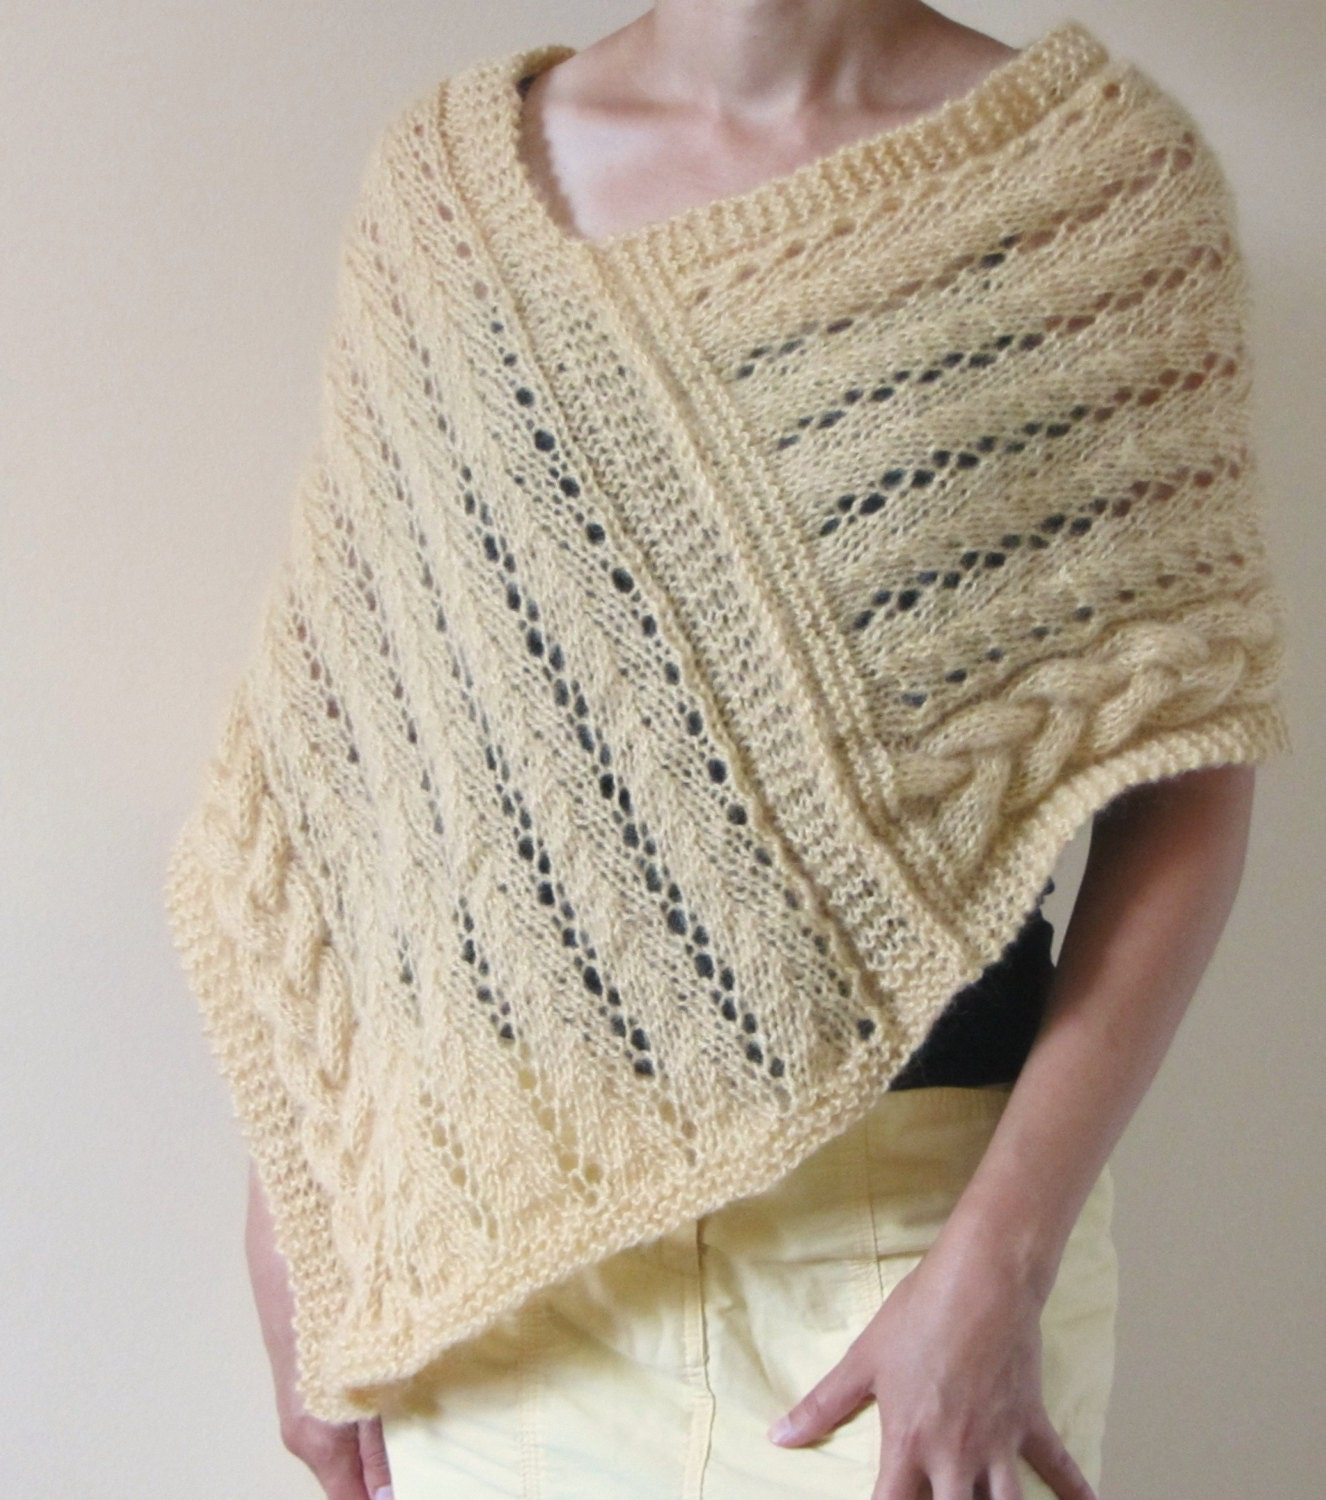 Lace Poncho Knitting Pattern : Cables and Lace Poncho Wrap Pattern knitting